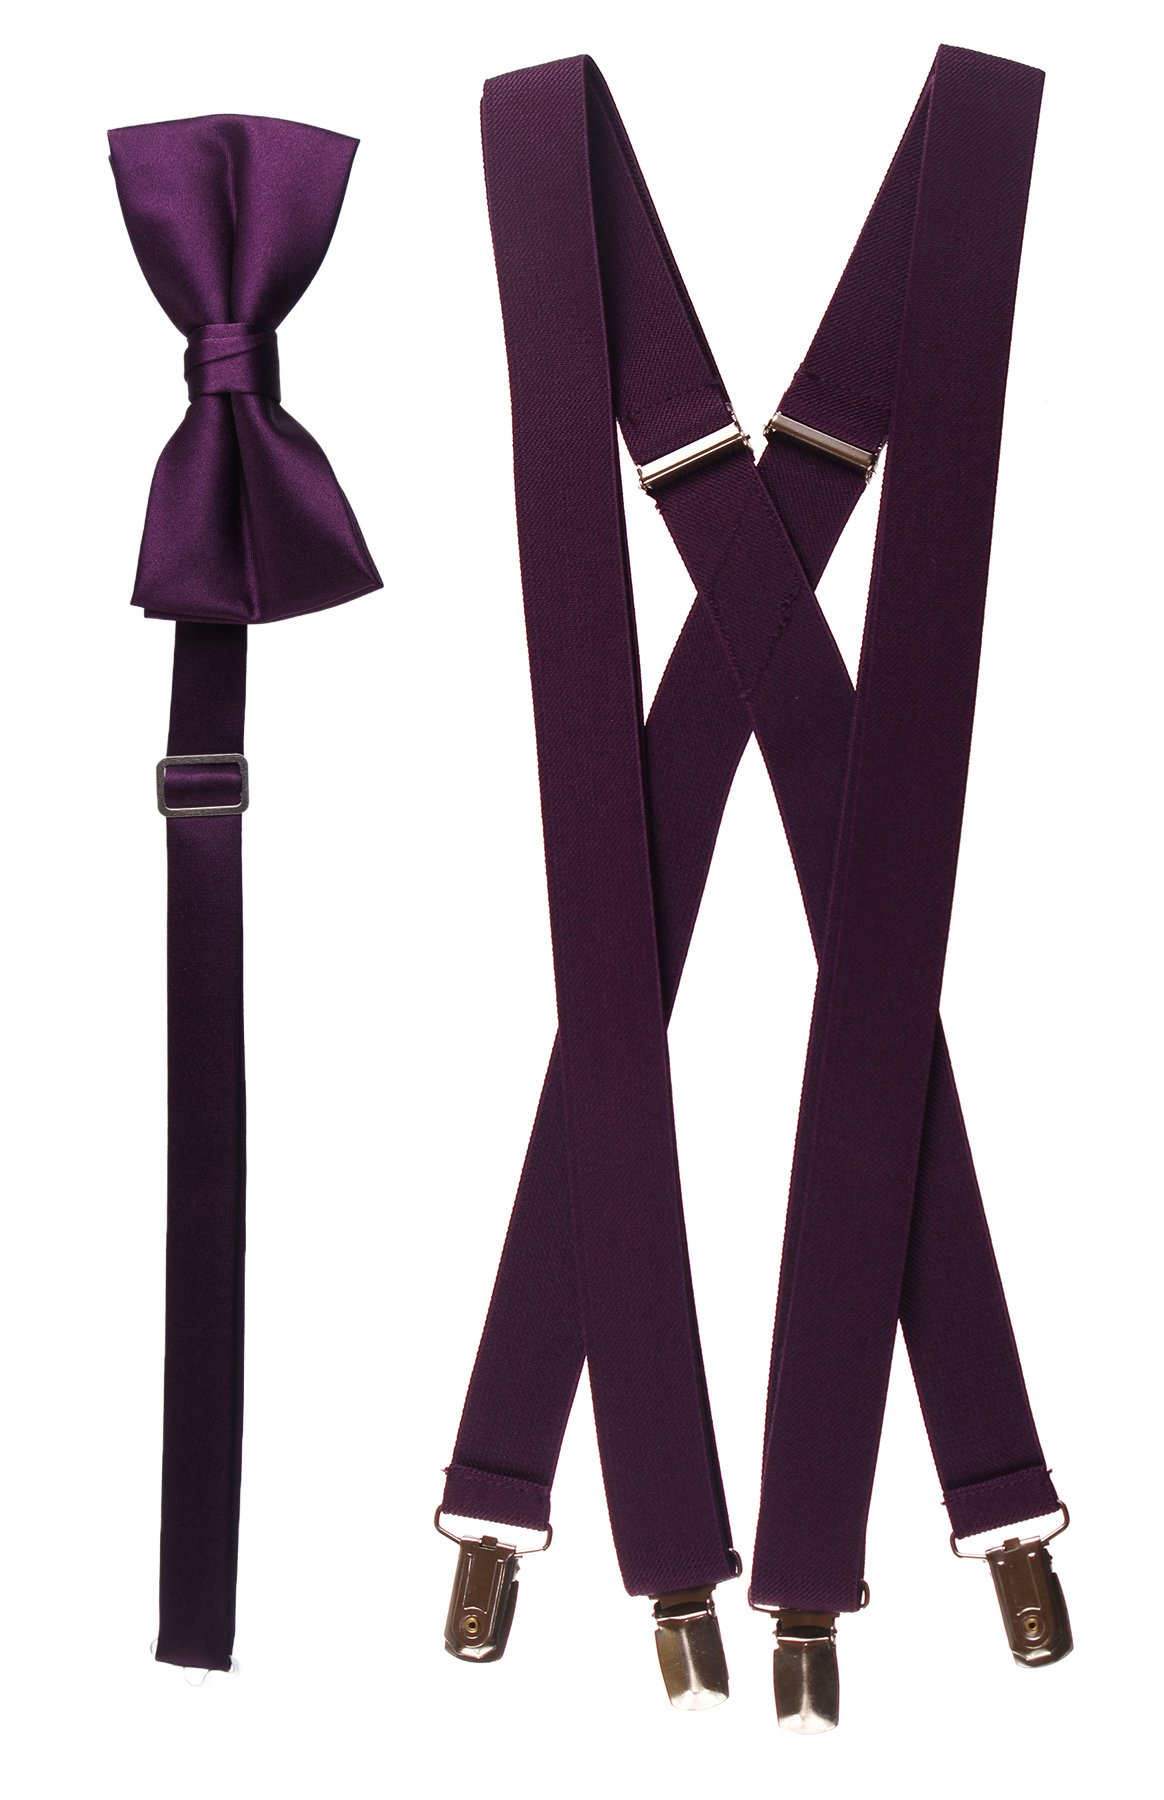 Tuxgear Mens Bow Tie and Suspender Set Combo, Berry, Men's 48 Inch (48'' Men's, Berry) by Tuxgear